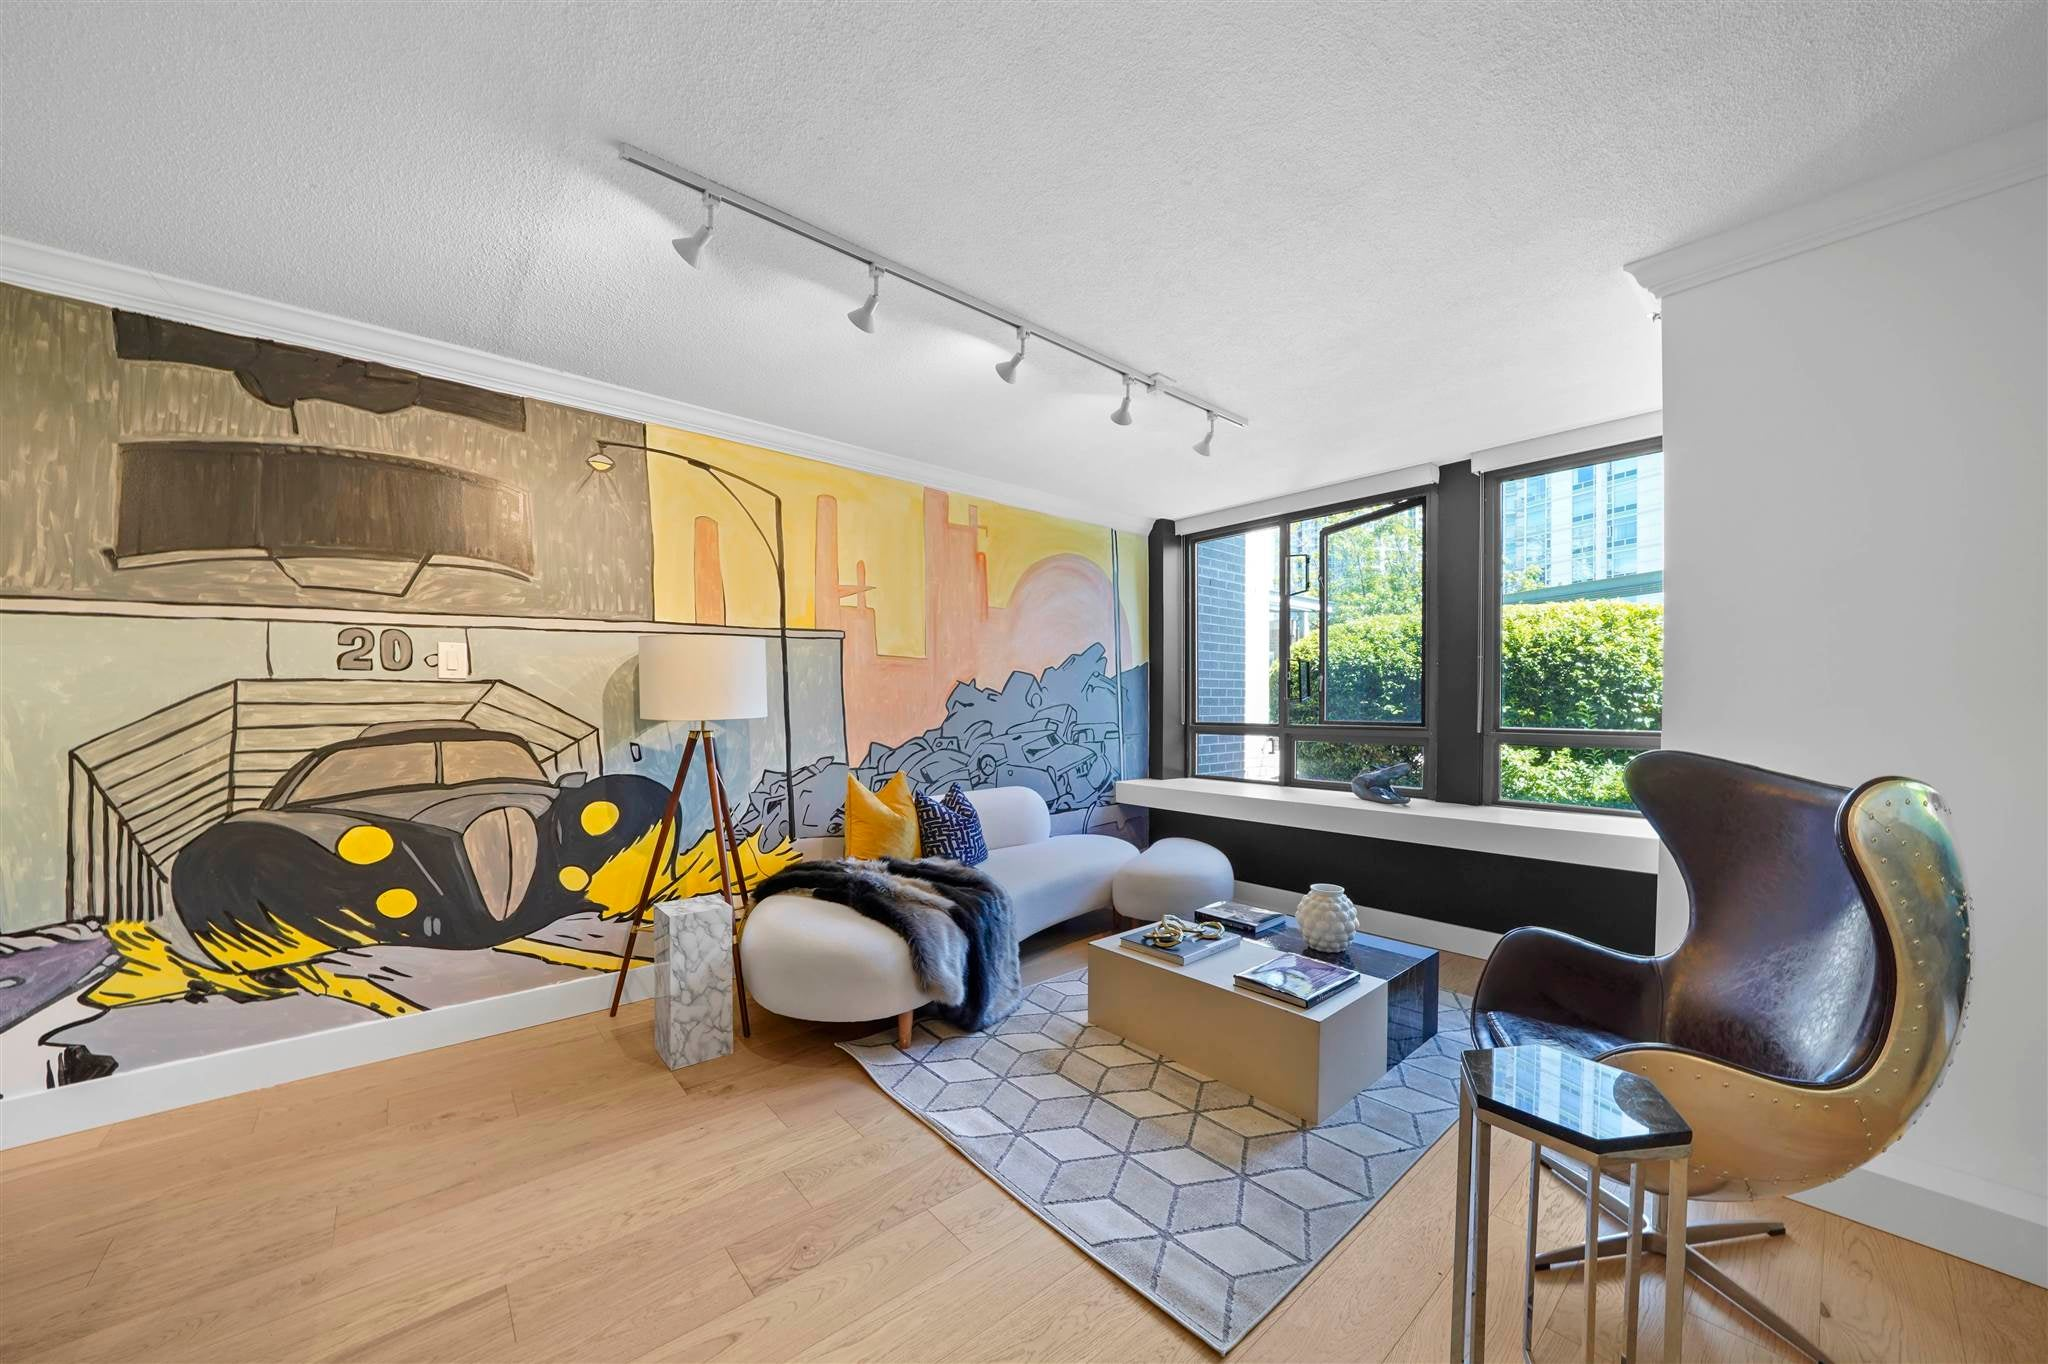 203 238 ALVIN NAROD MEWS - Yaletown Apartment/Condo for sale, 2 Bedrooms (R2604830) - #1